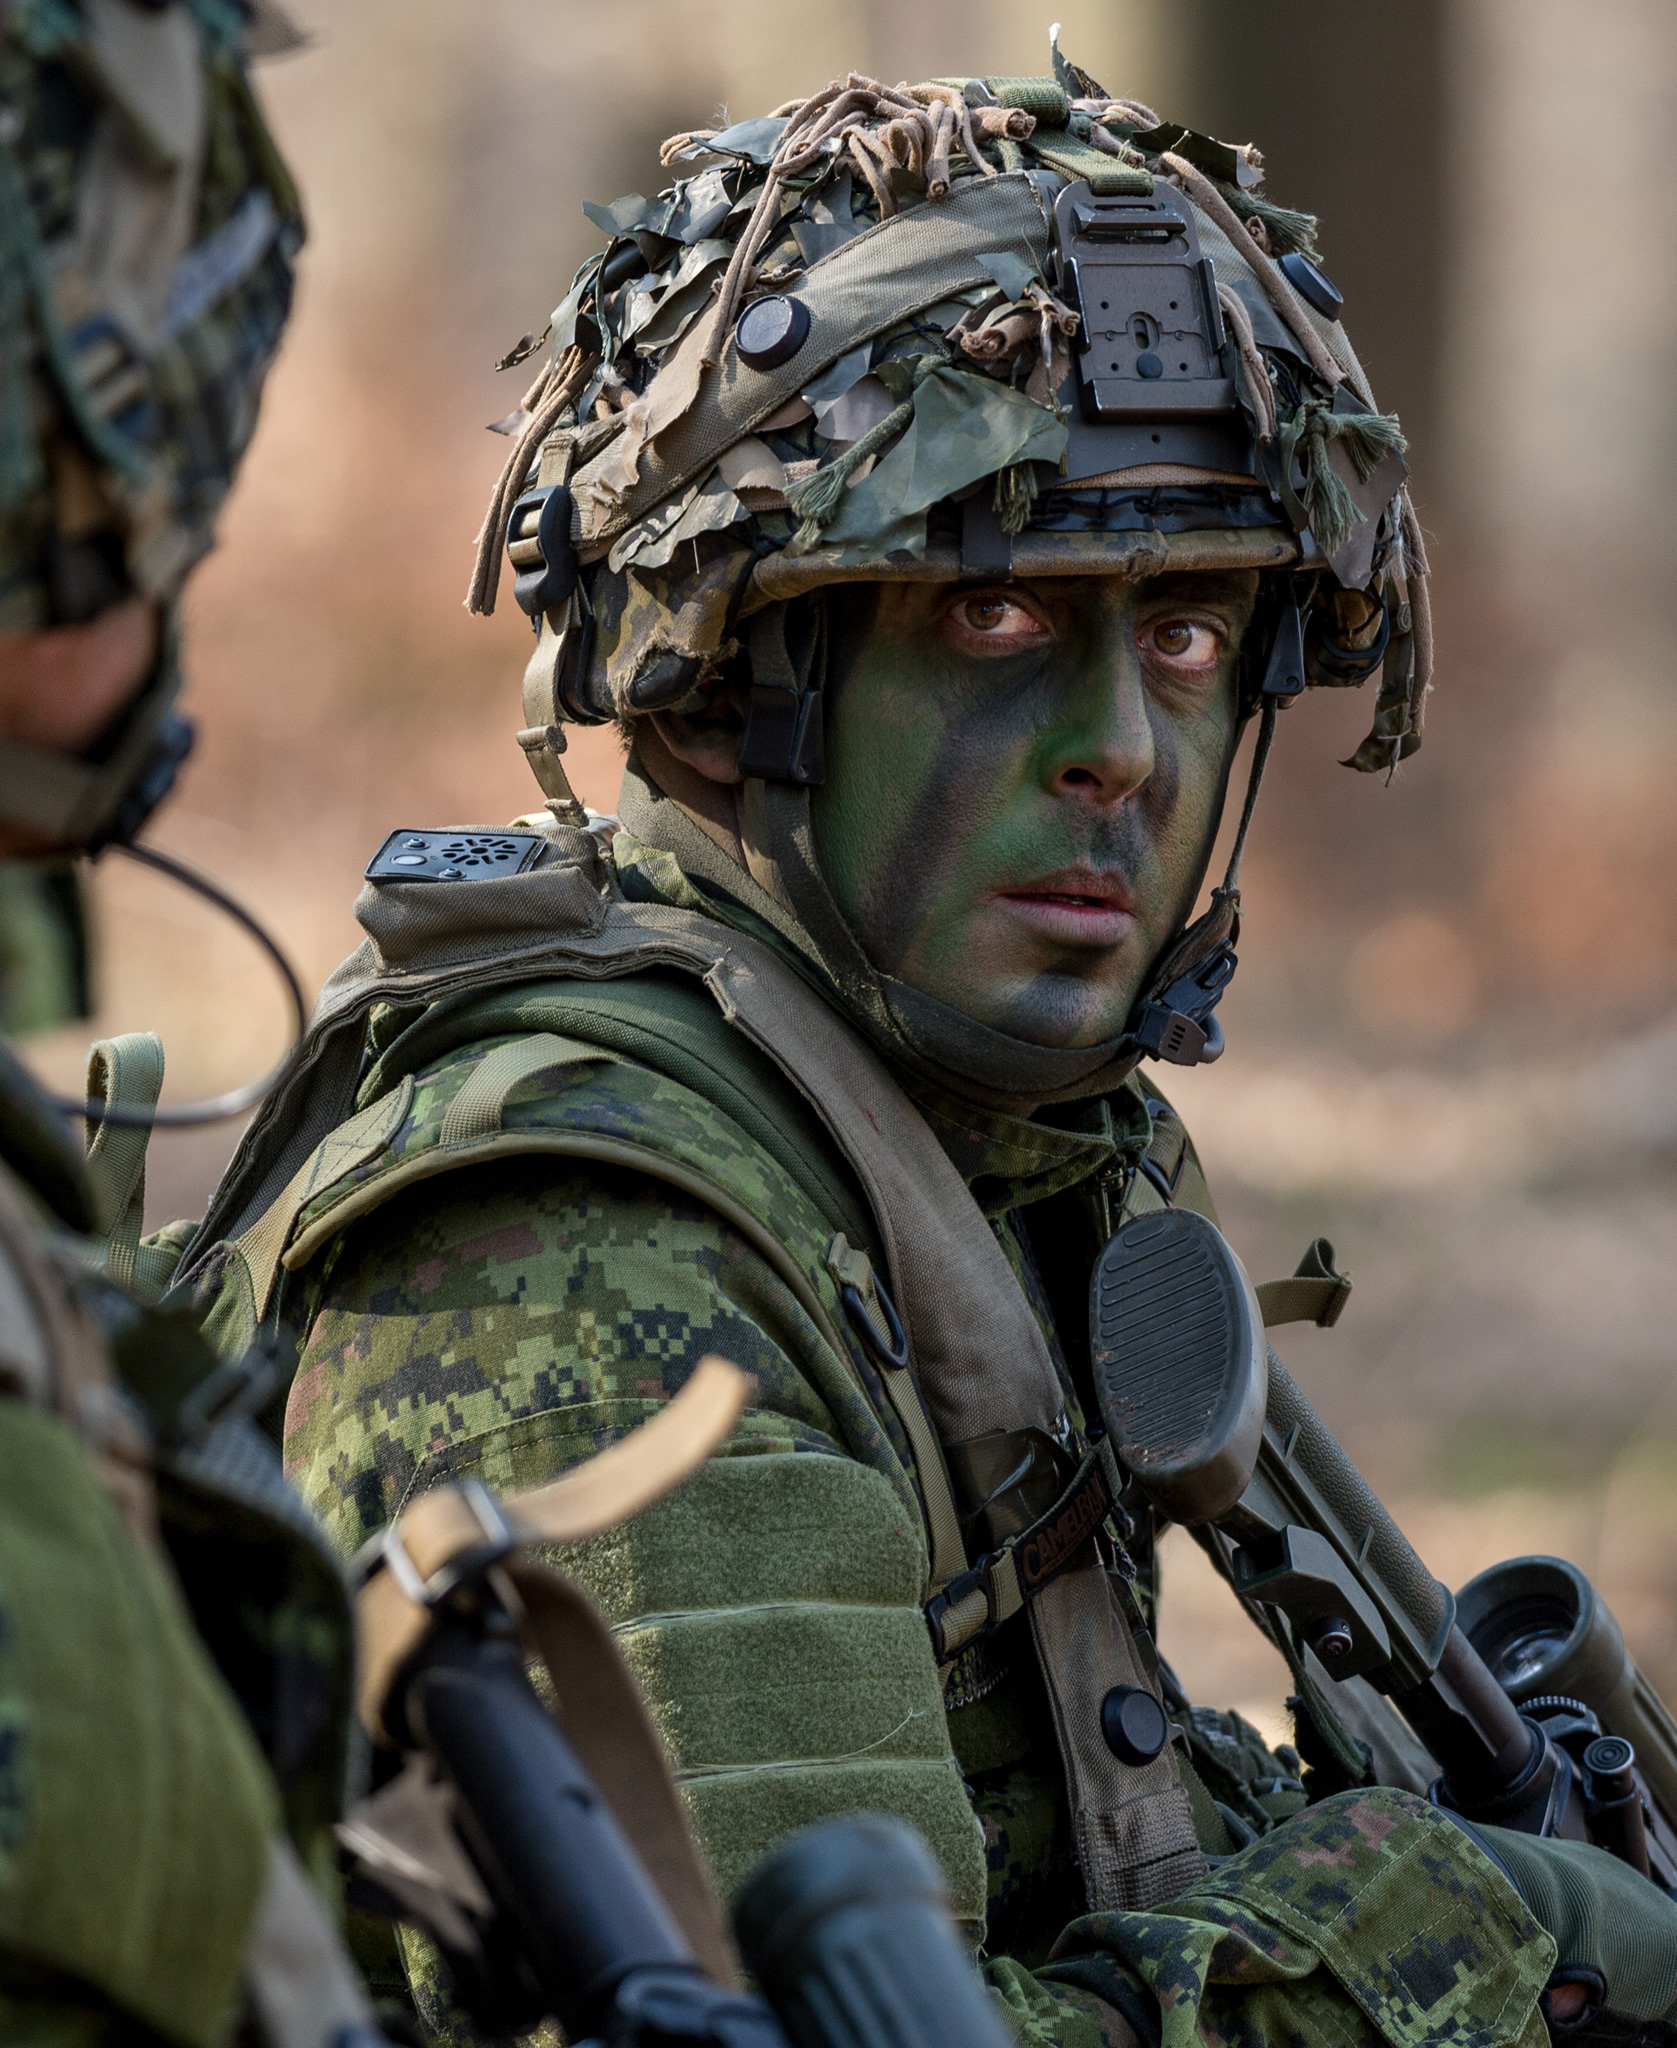 Hohenfels, Germany. March 16, 2017 – A member of 3rd Battalion, Princess Patricia's Canadian Light Infantry keeps watch for his teammates in the Hohenfels Training Area on Exercise ALLIED SPIRIT VI during Operation REASSURANCE. (Photo: MCpl Jennifer Kusche, Canadian Forces Combat Camera)